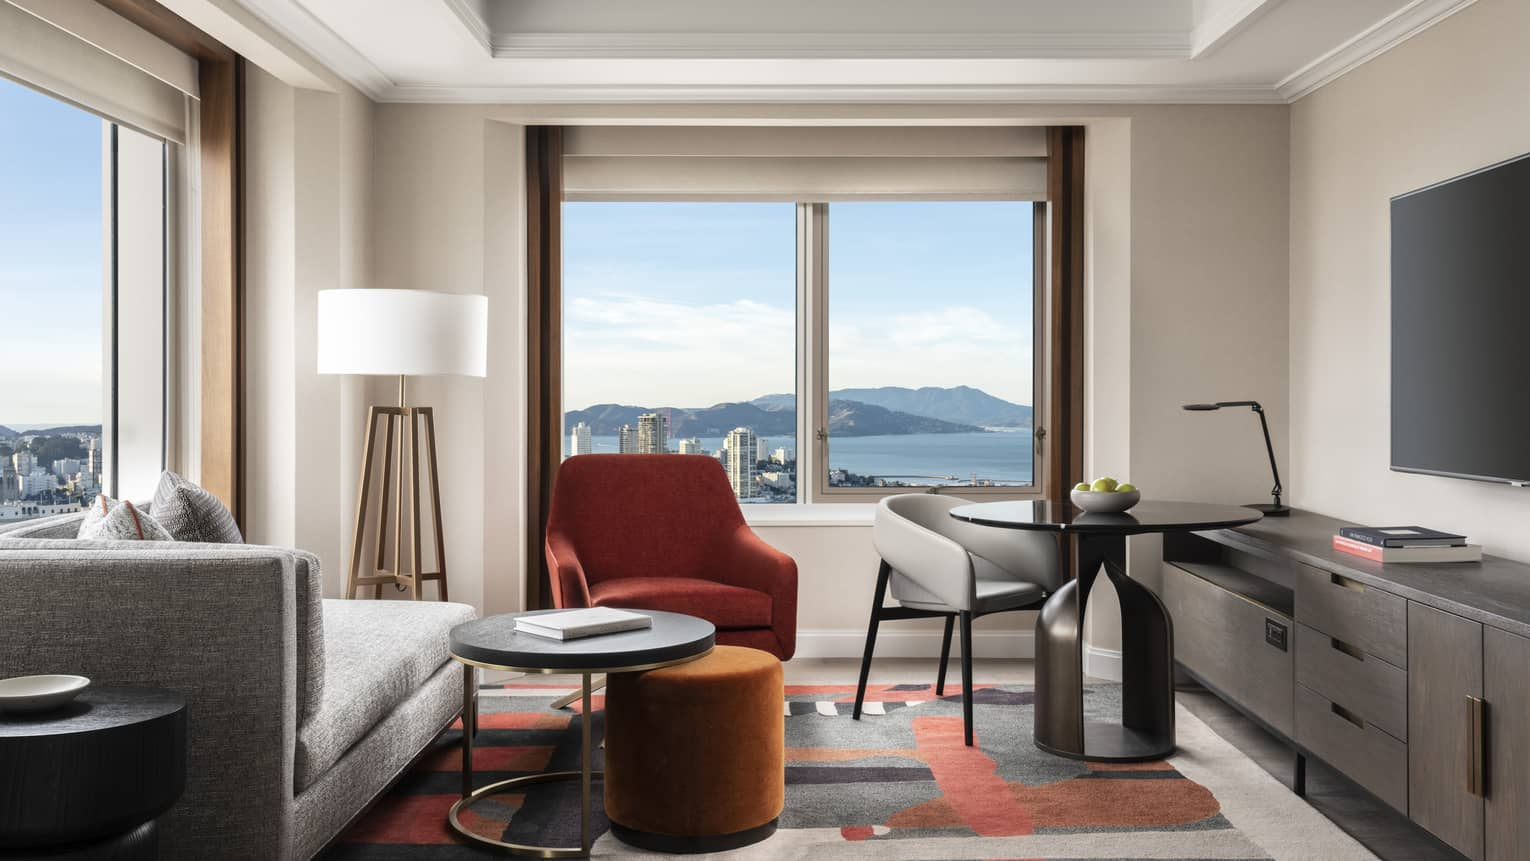 Living area in a hotel room, with corner views of San Francisco and bay